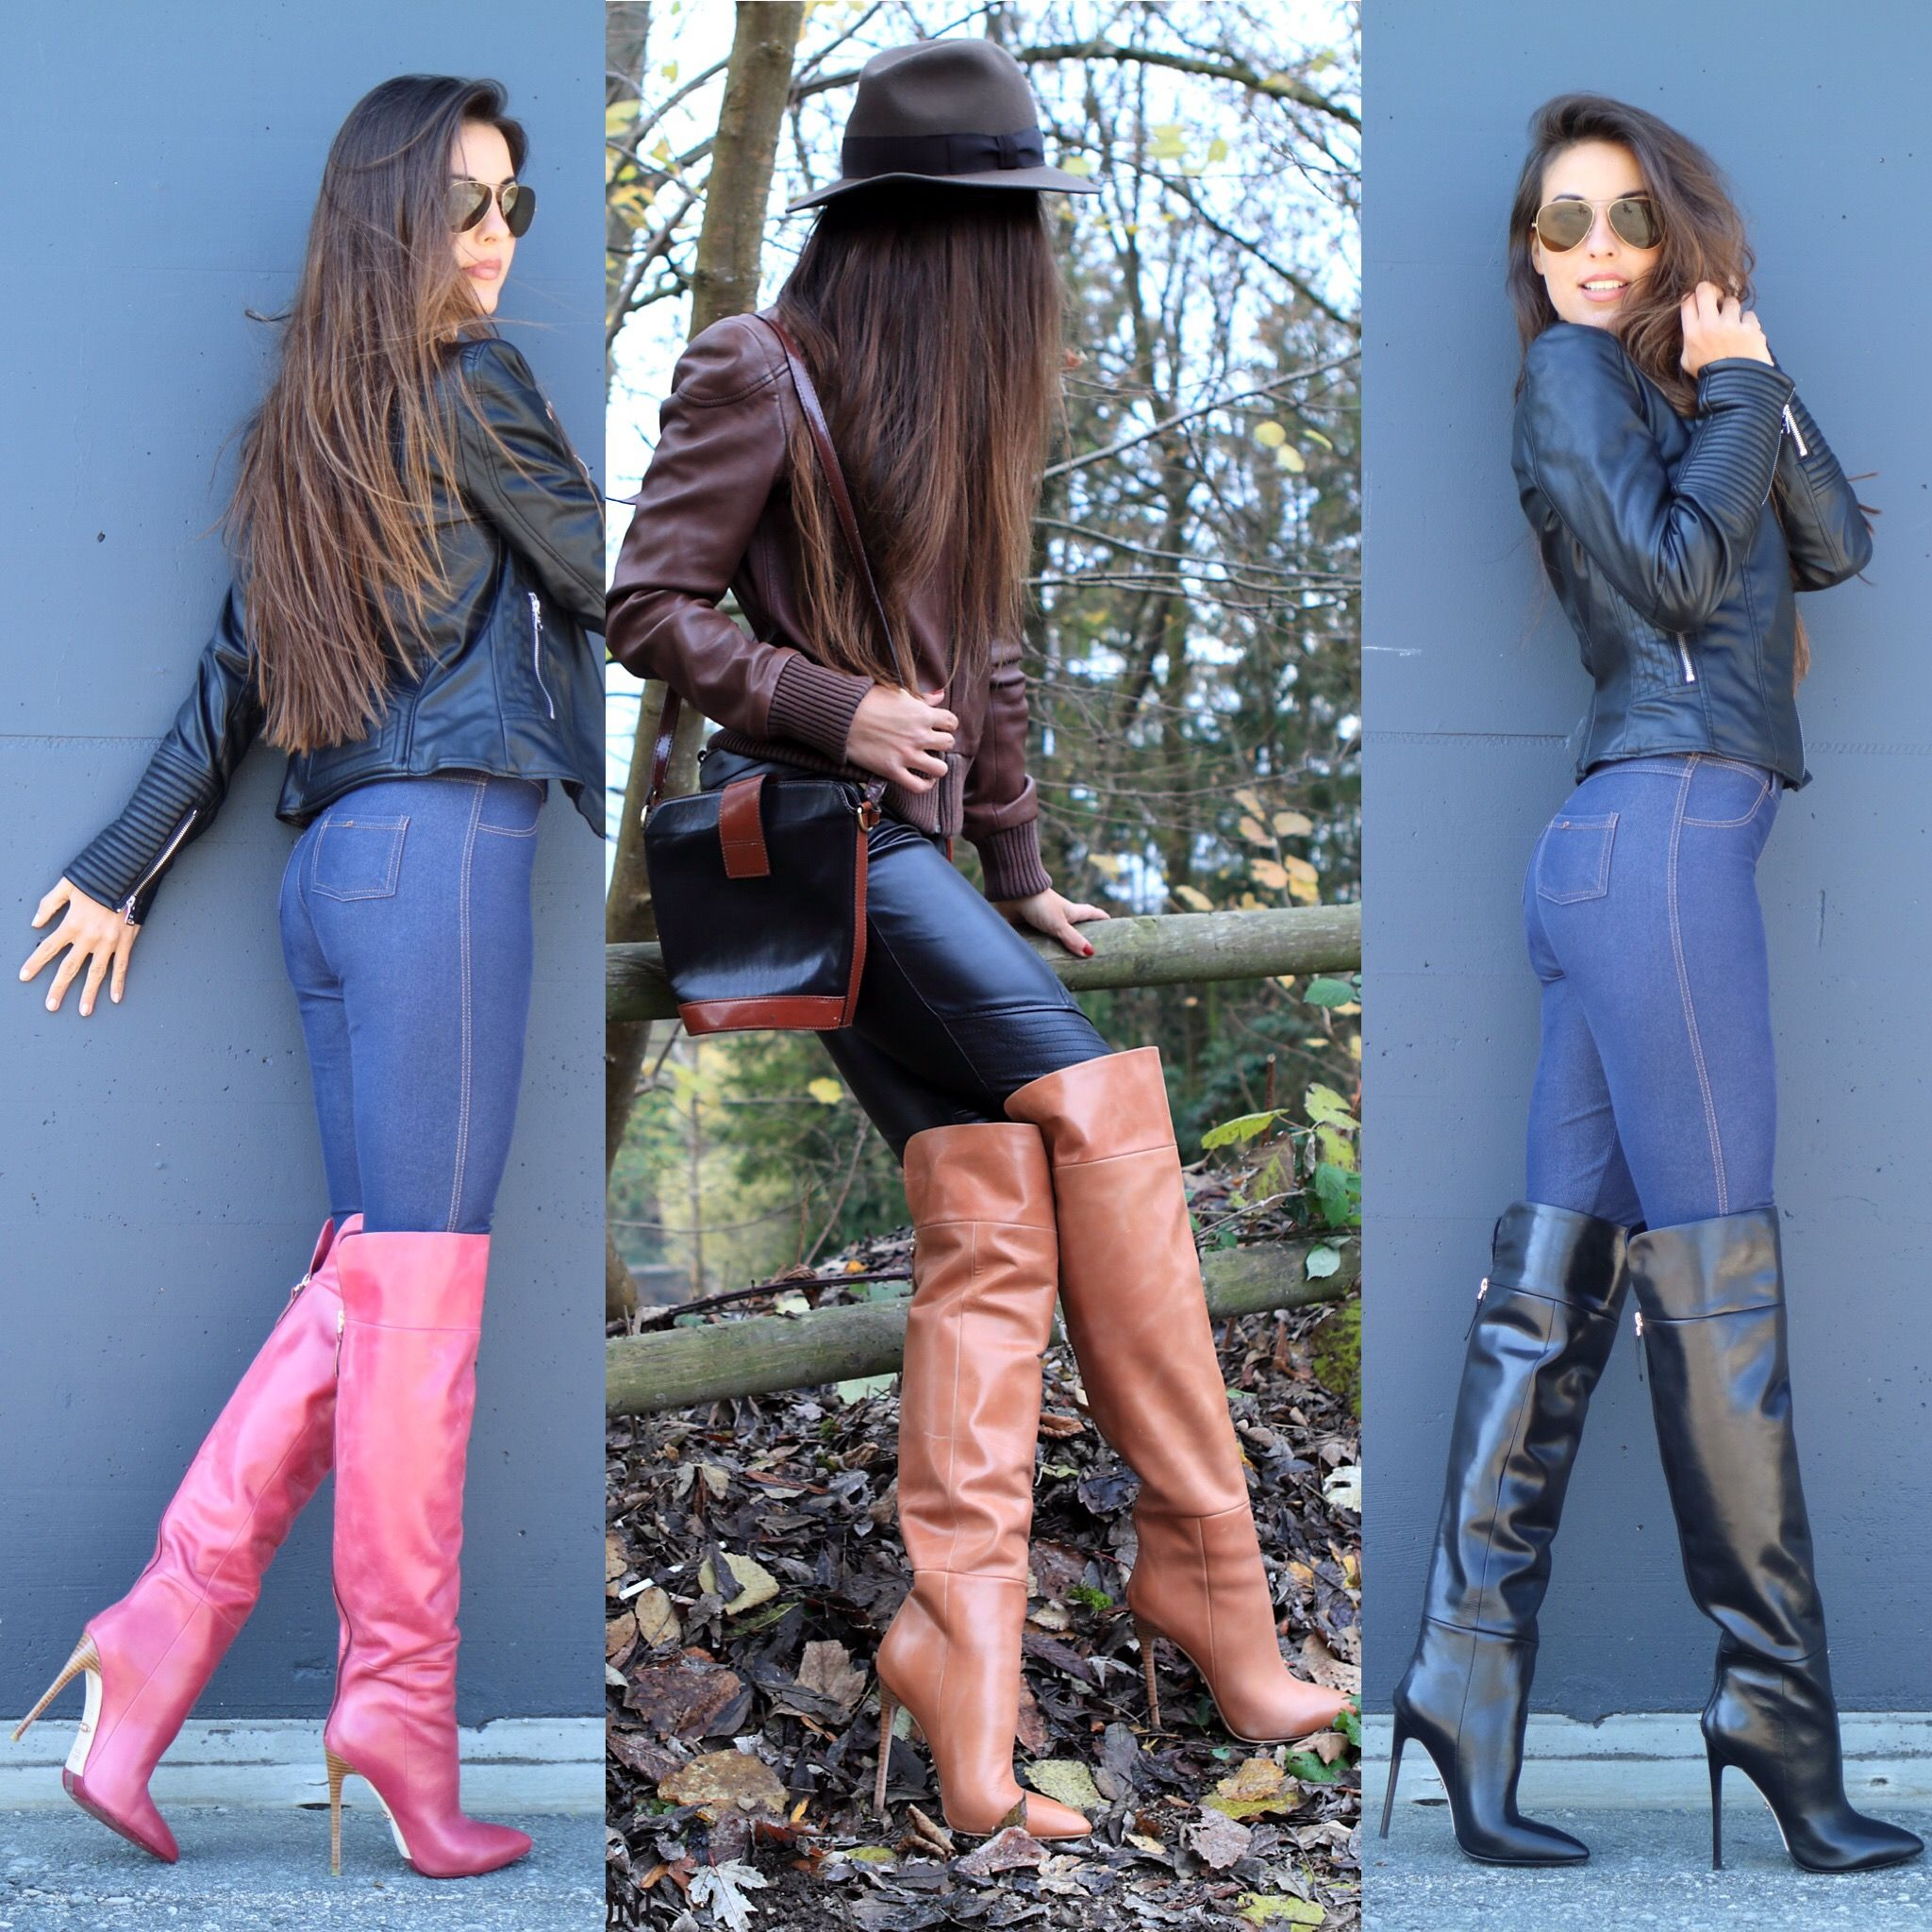 MAURIZIO PORTONI - timeless chic in shoes! maurizioportoni.com 50% store opening discount! free shipping and returns!  #overknee #boots